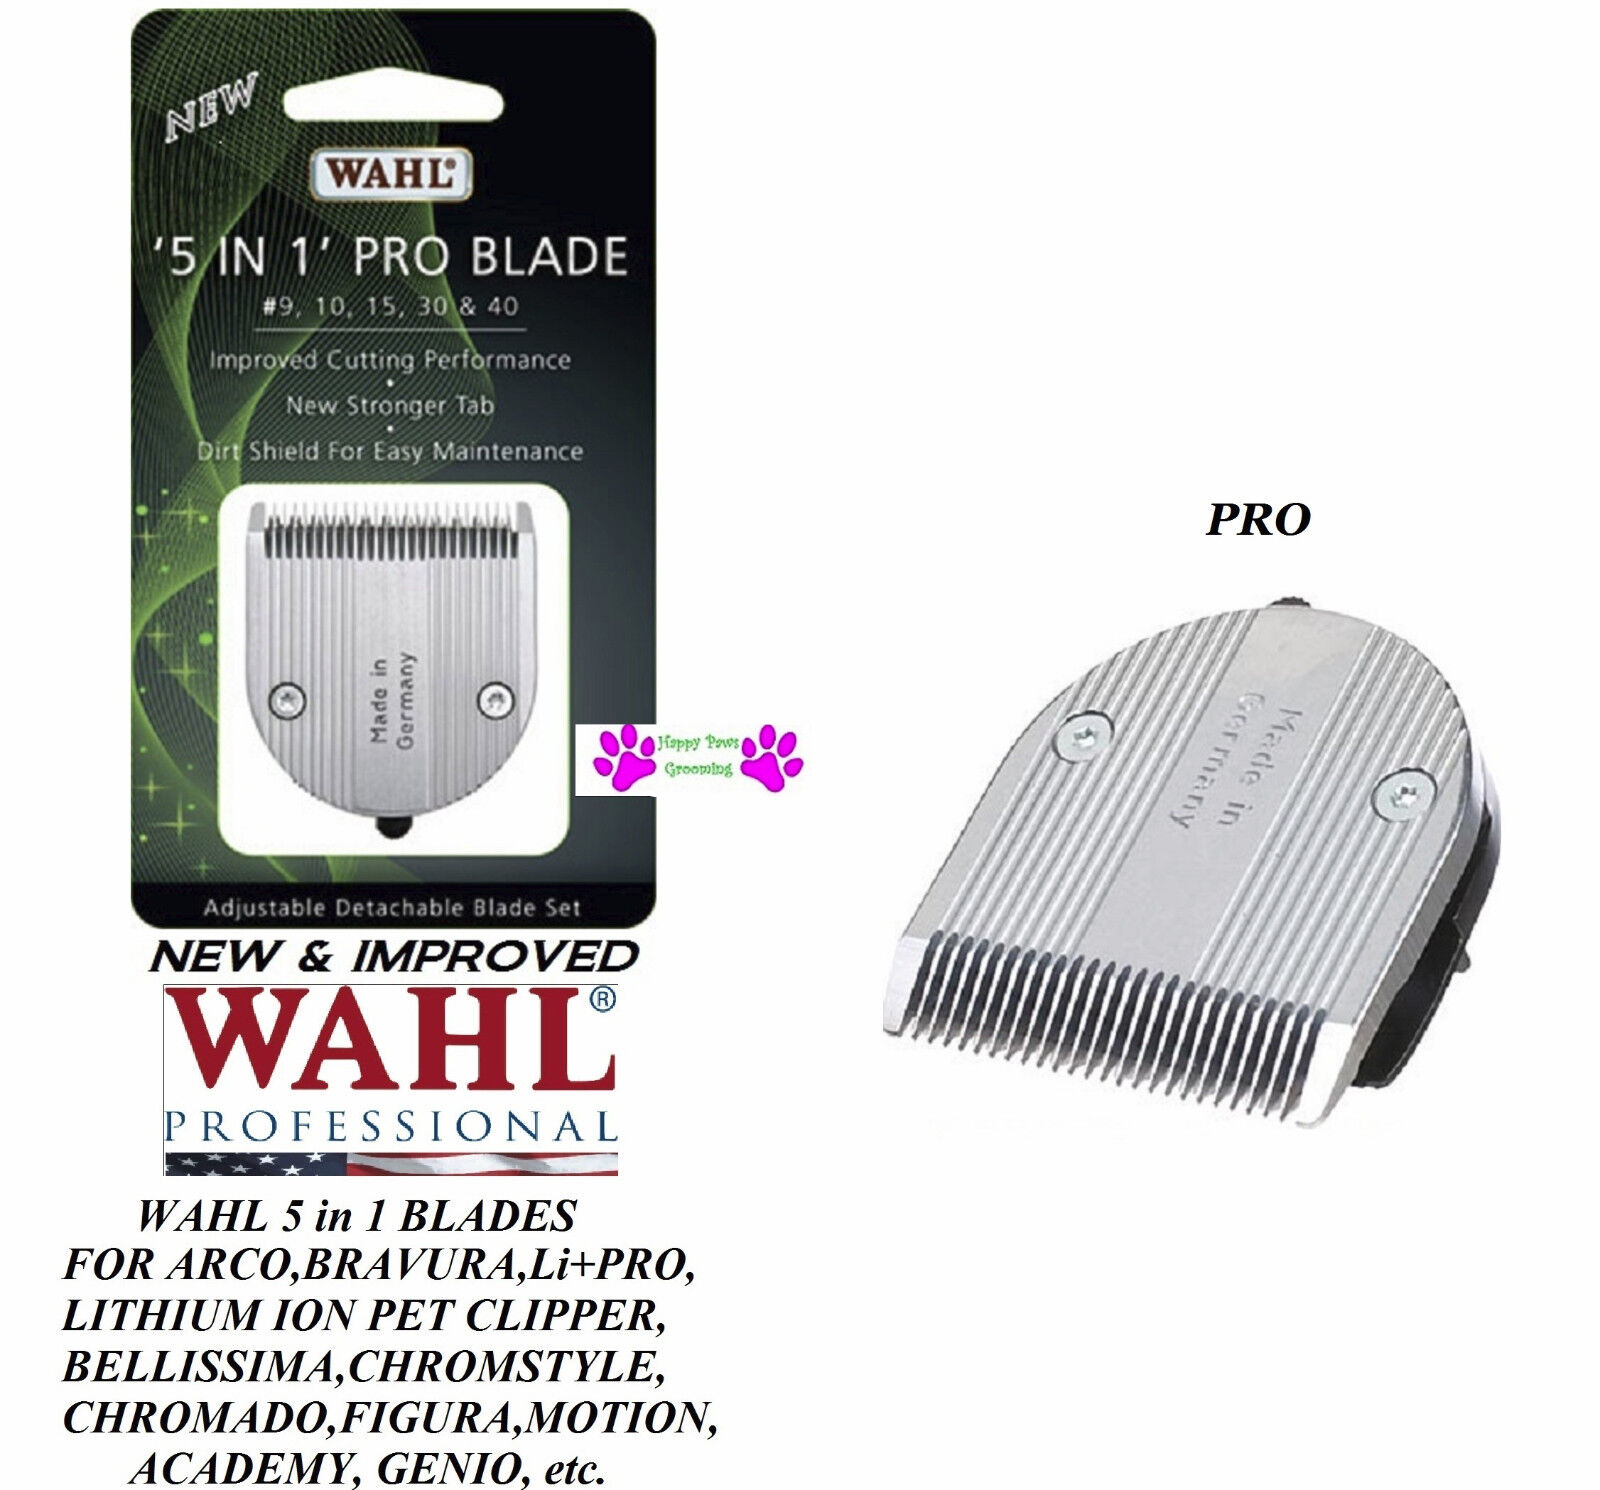 2-NEW&IMPROVED Wahl FINE PRO SERIES 5 in 1 Blade for FIGURA,Bravura Lithium,ARCO